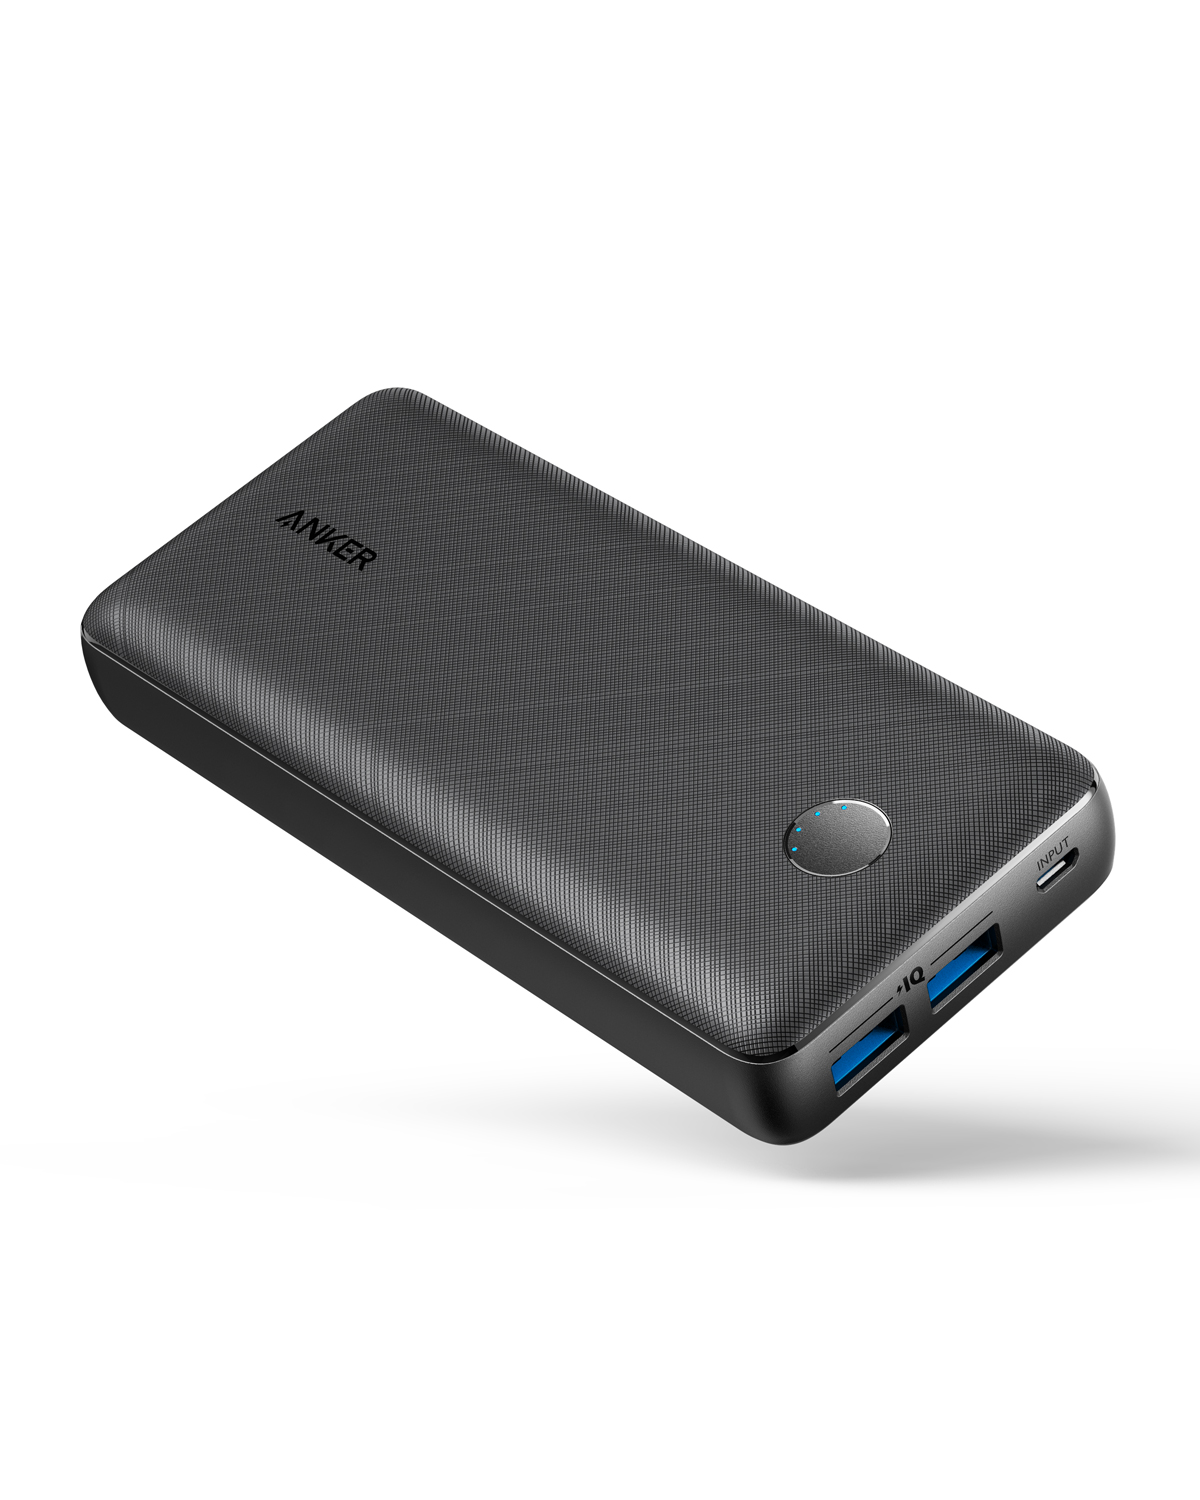 Anker introduces Powercore, a 20,000mAh power bank in India